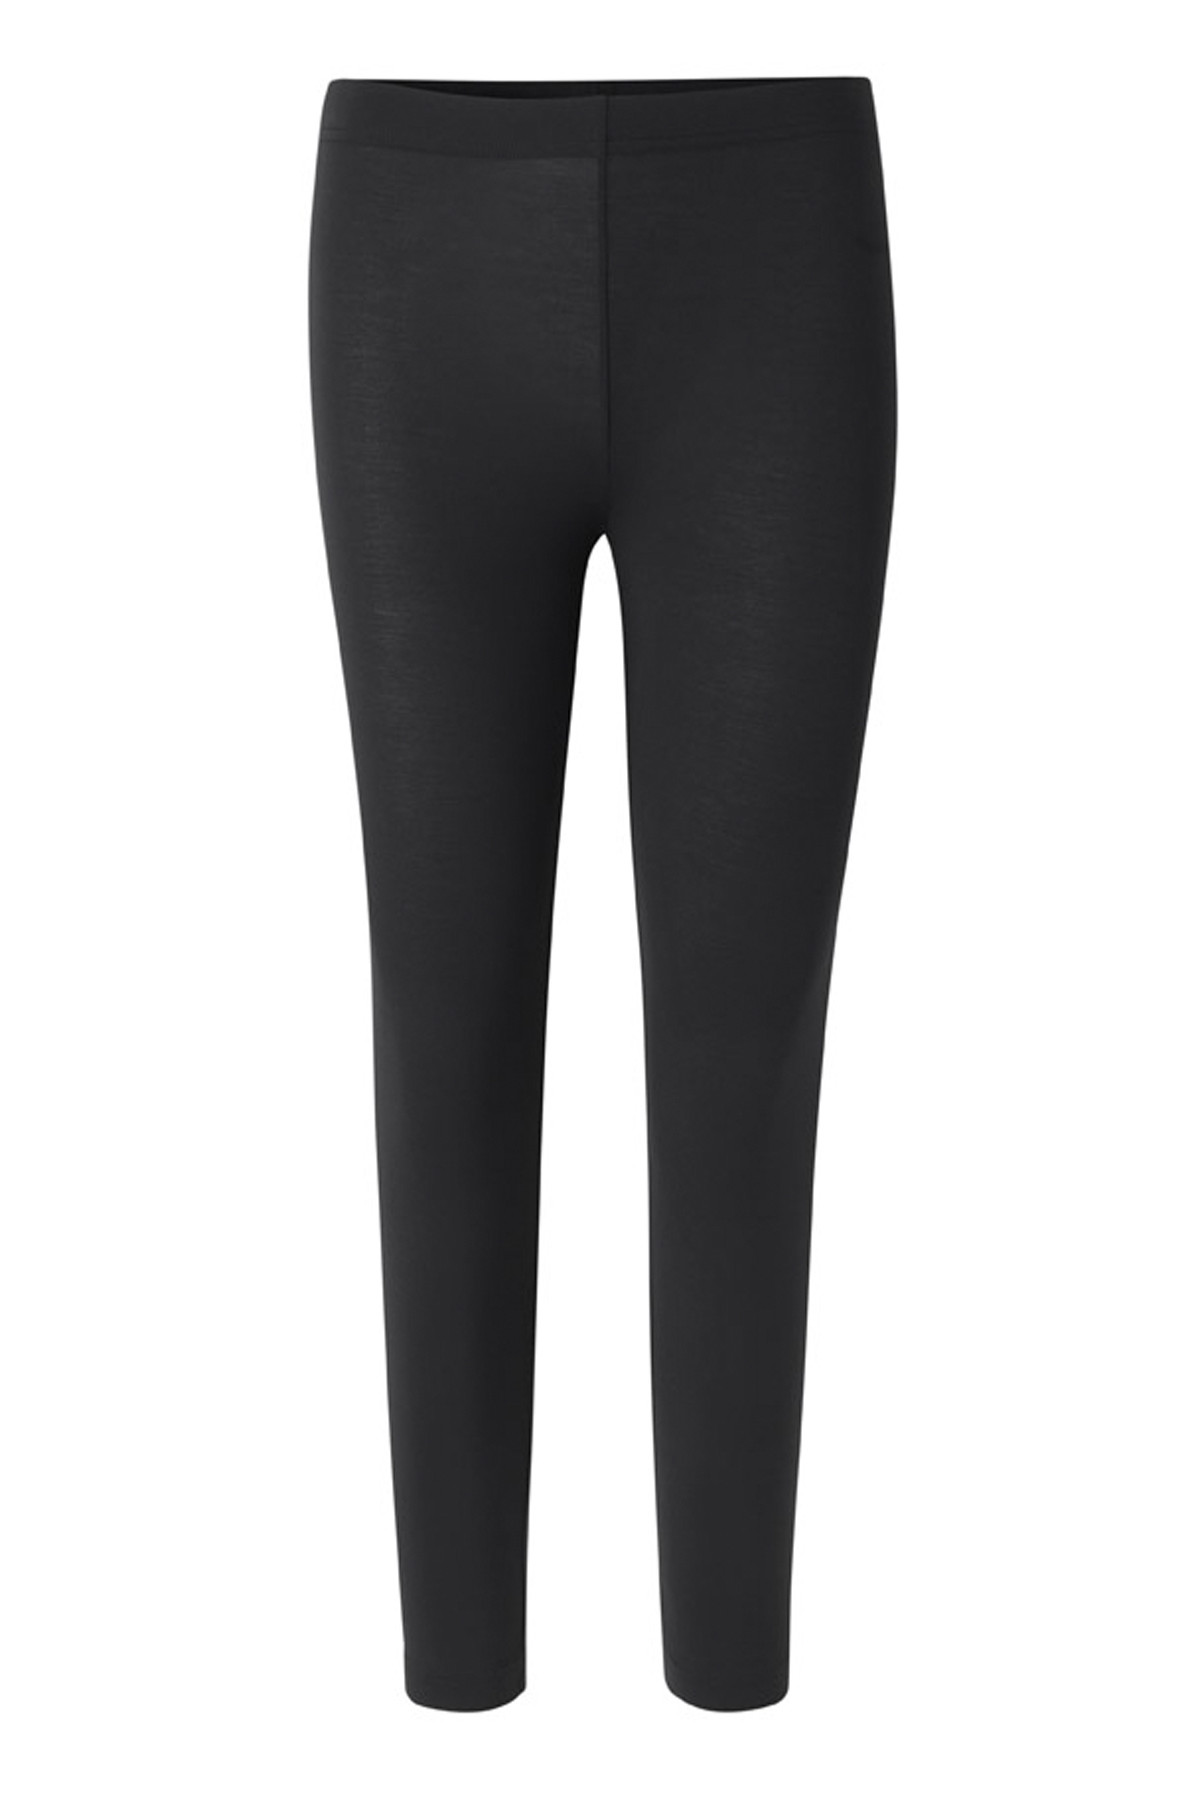 NOA NOA LEGGINGS 1-9384-1 00000 (Black, XS)